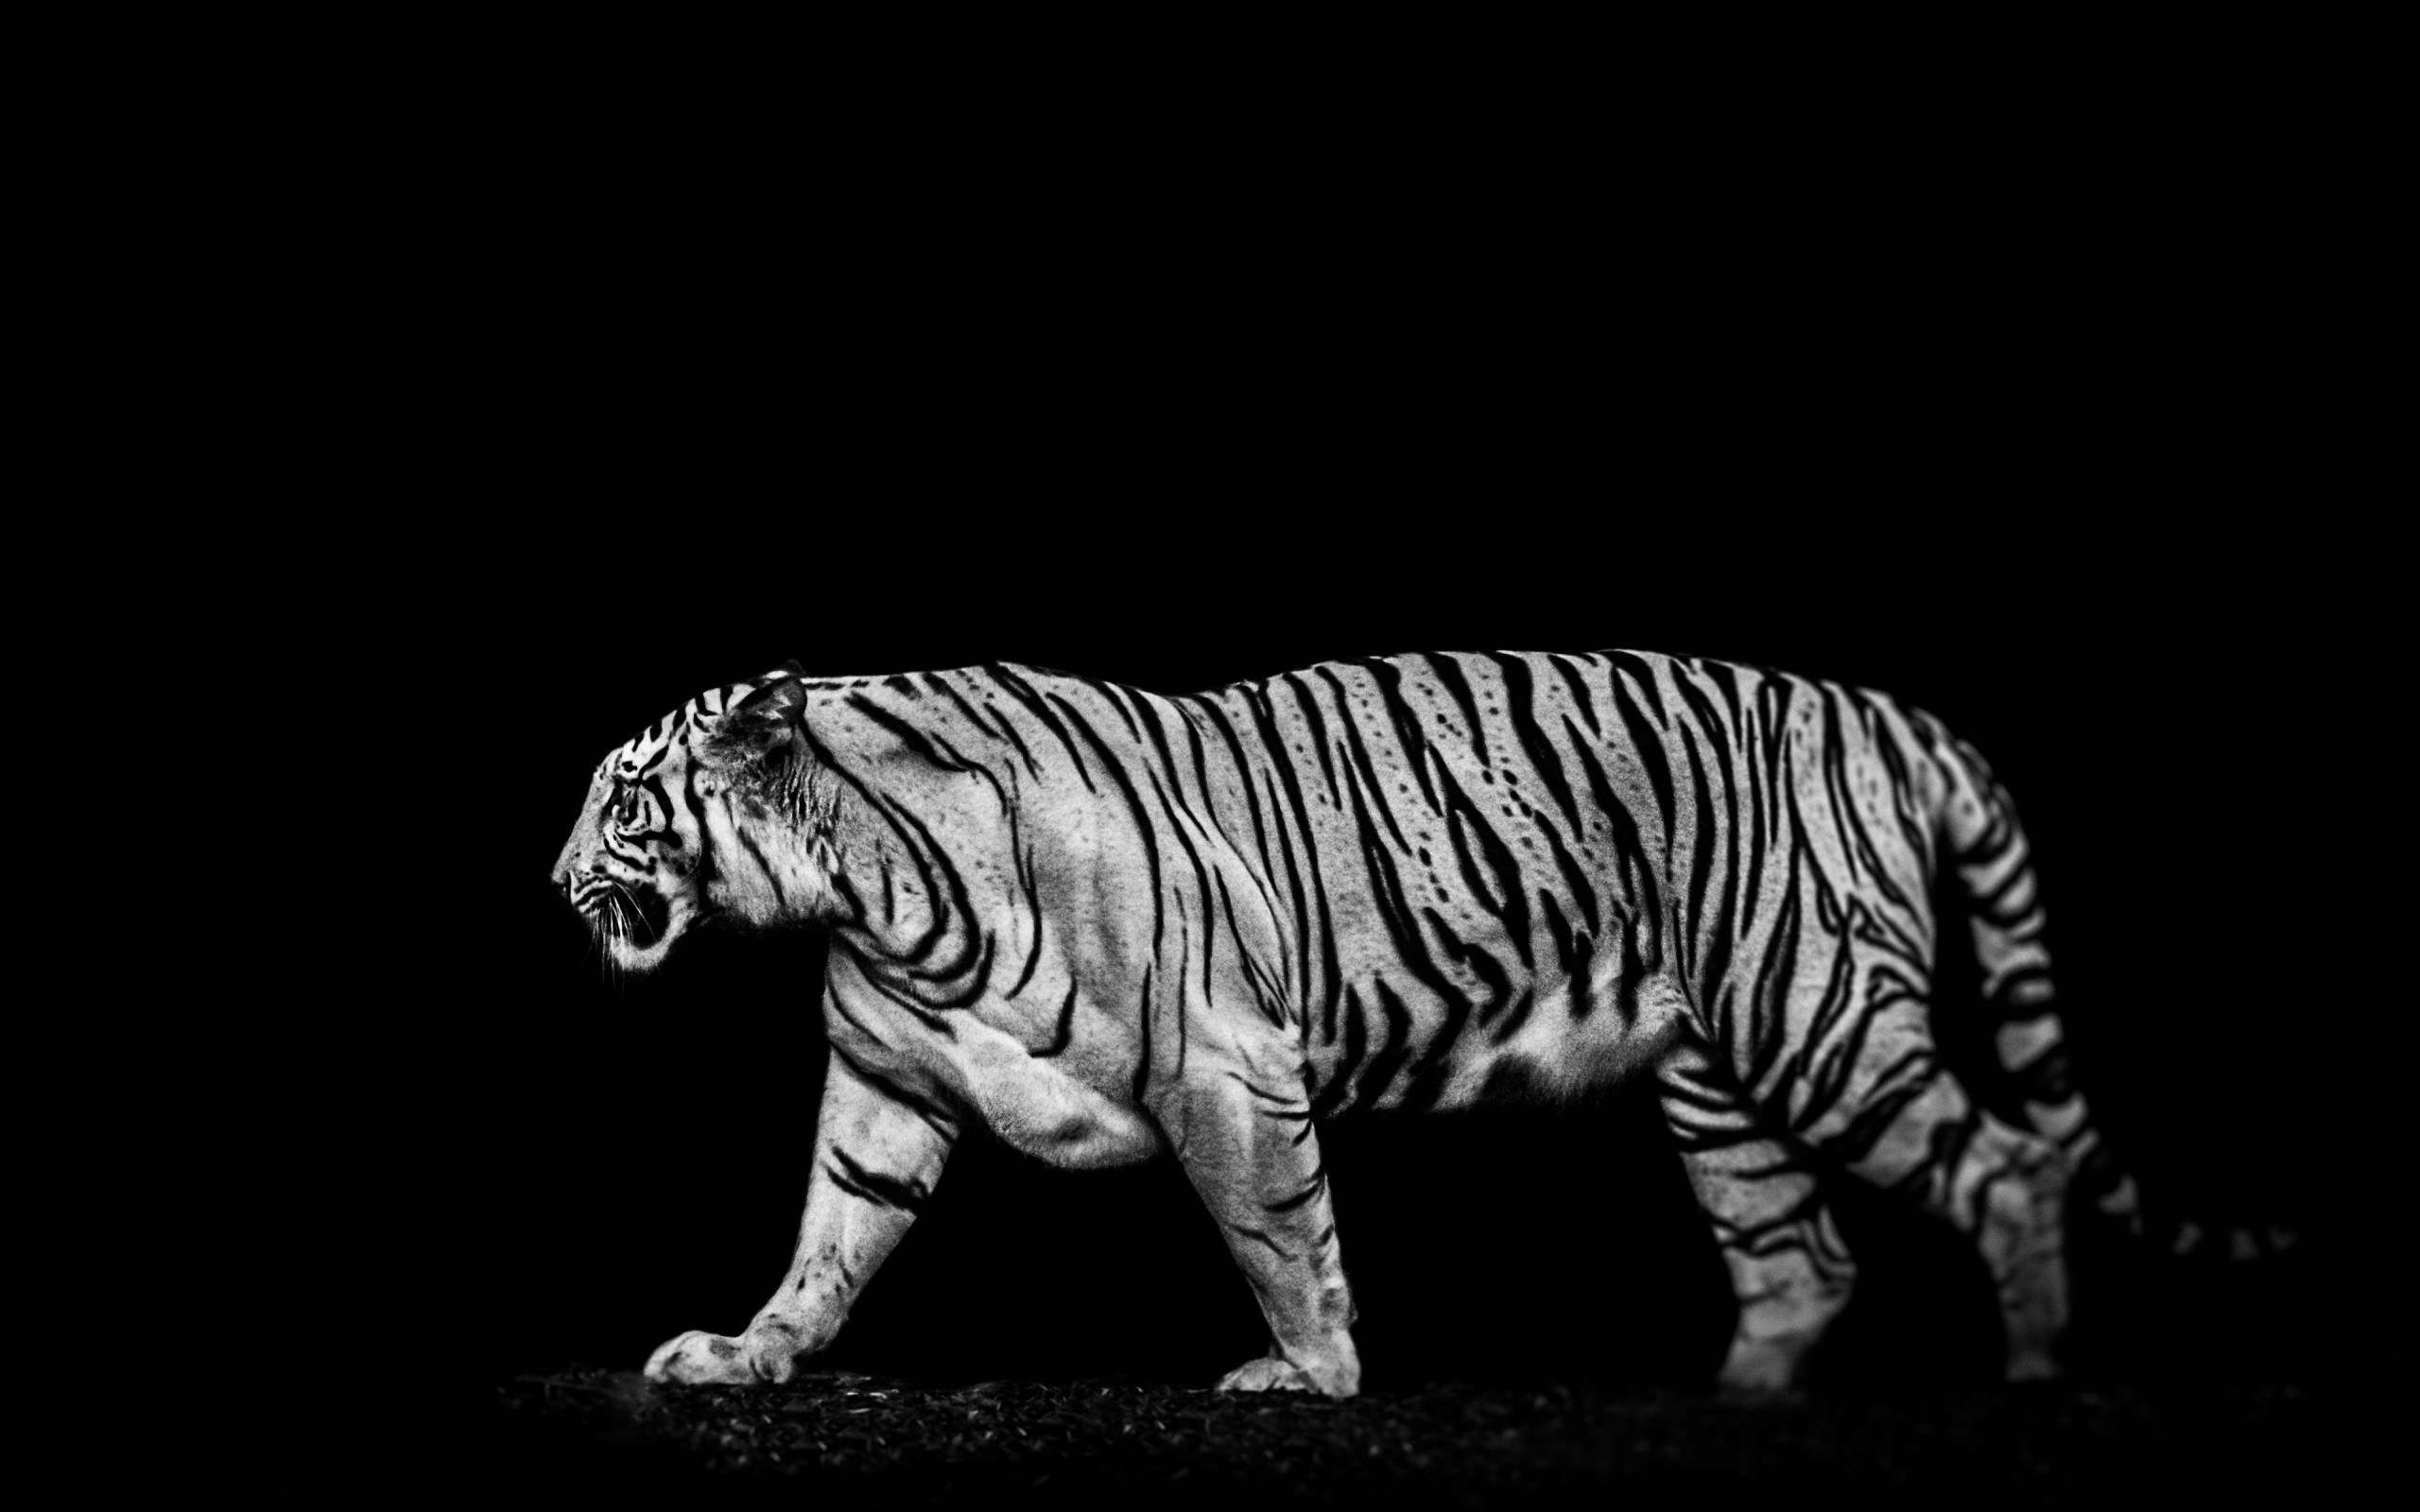 Tiger in the darkness wallpaper 2560x1600